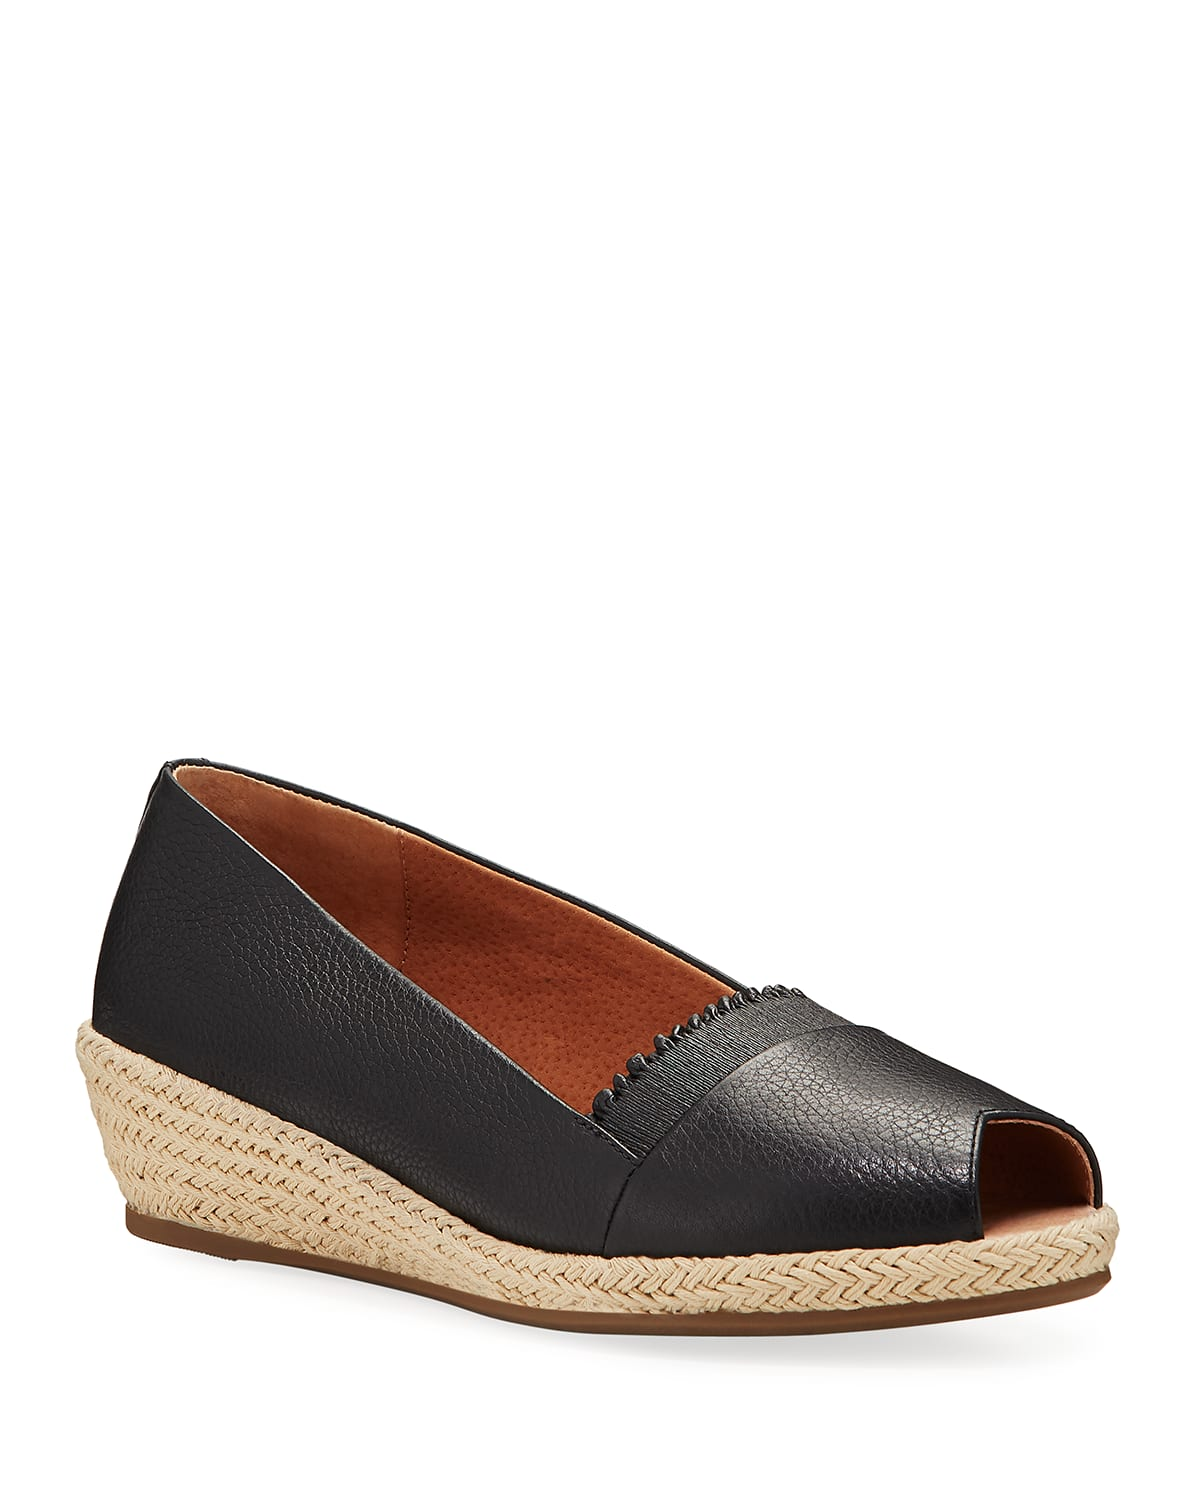 Luci Ruffle Leather Espadrille Loafers